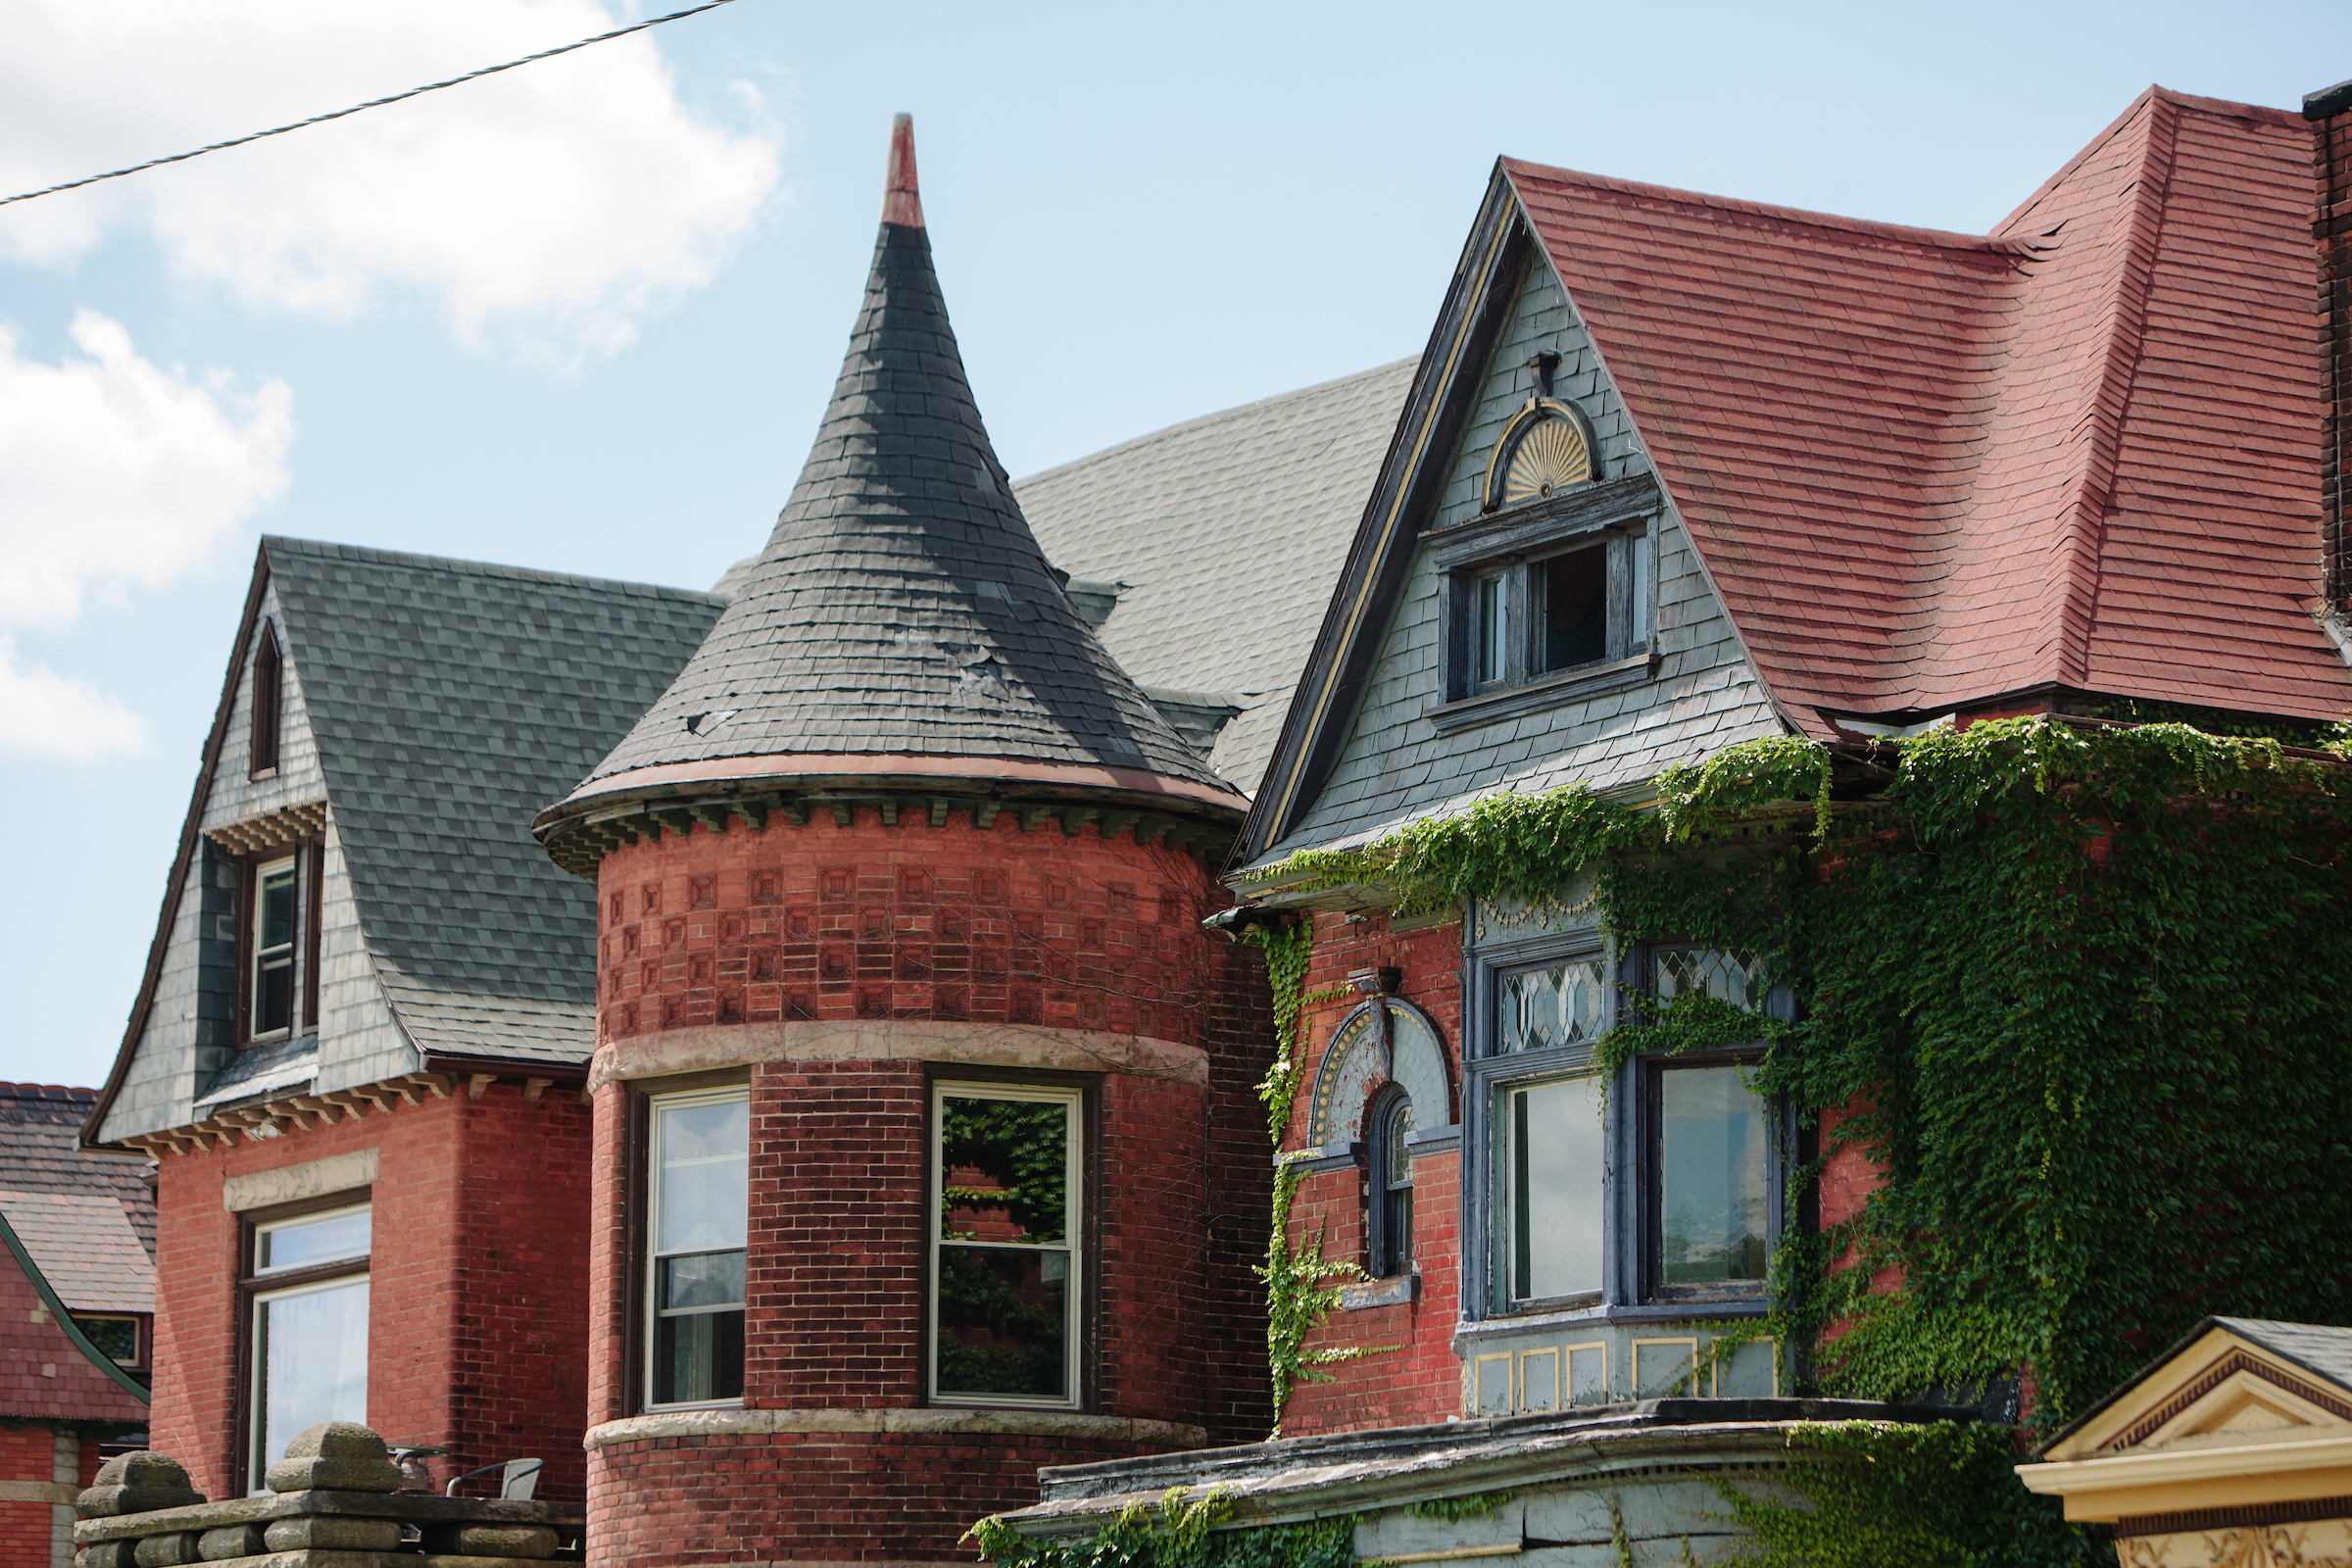 The tops of three homes in Woodbridge. There's the tip of a turret and roofs. Some vines grow outside the windows.